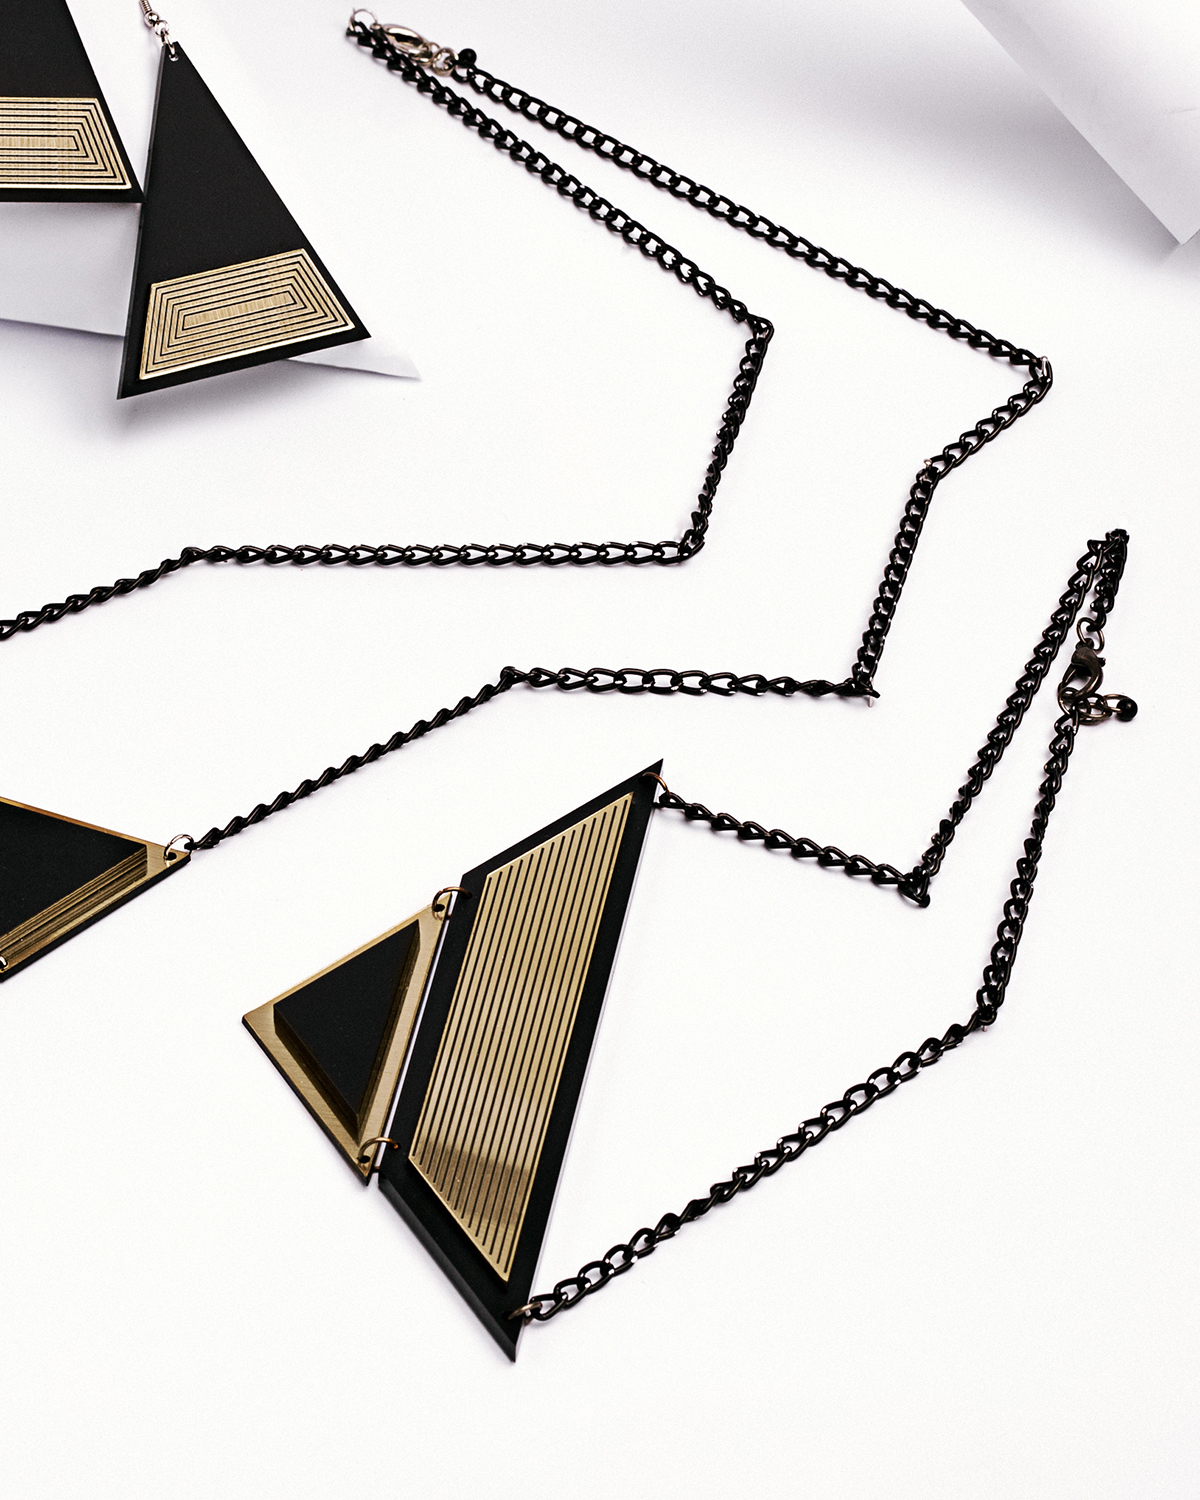 Golden rule necklace | Lasercut jewellery | Rename jewelry | Made in Belgrade